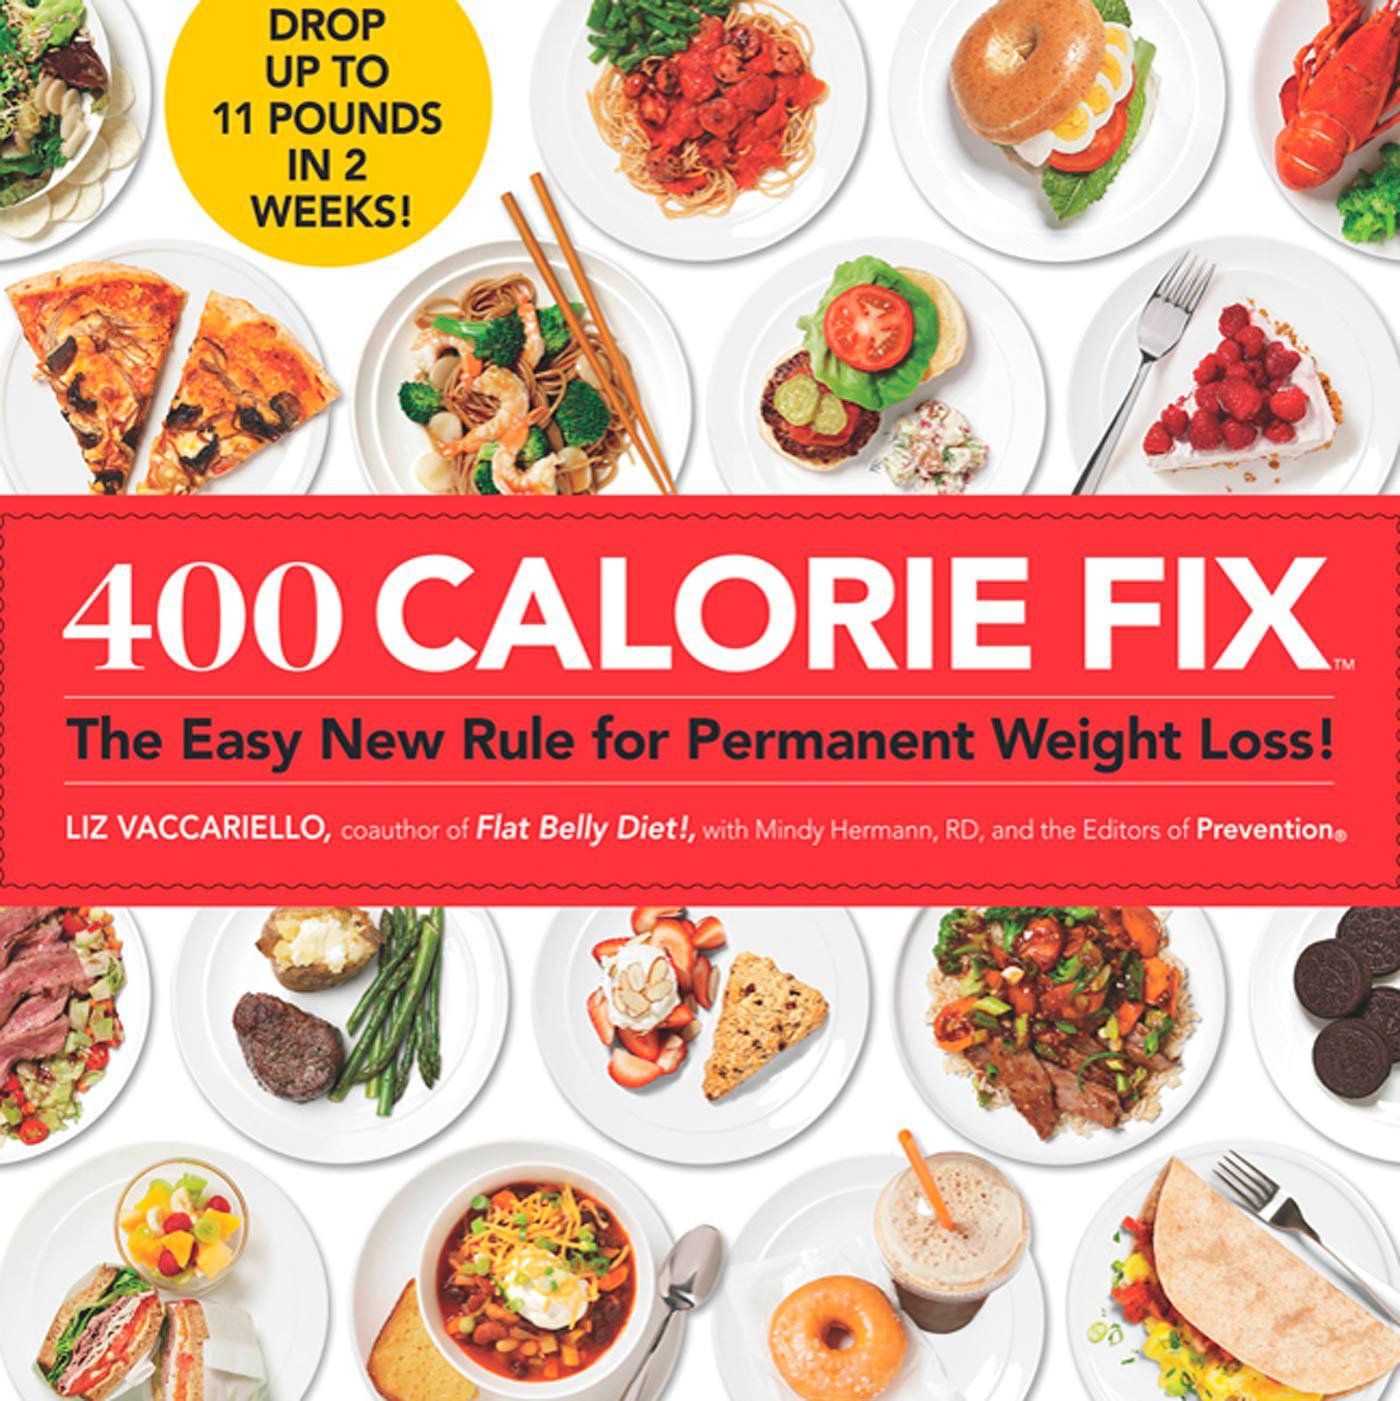 400-Calorie Foods at the Buffet advise